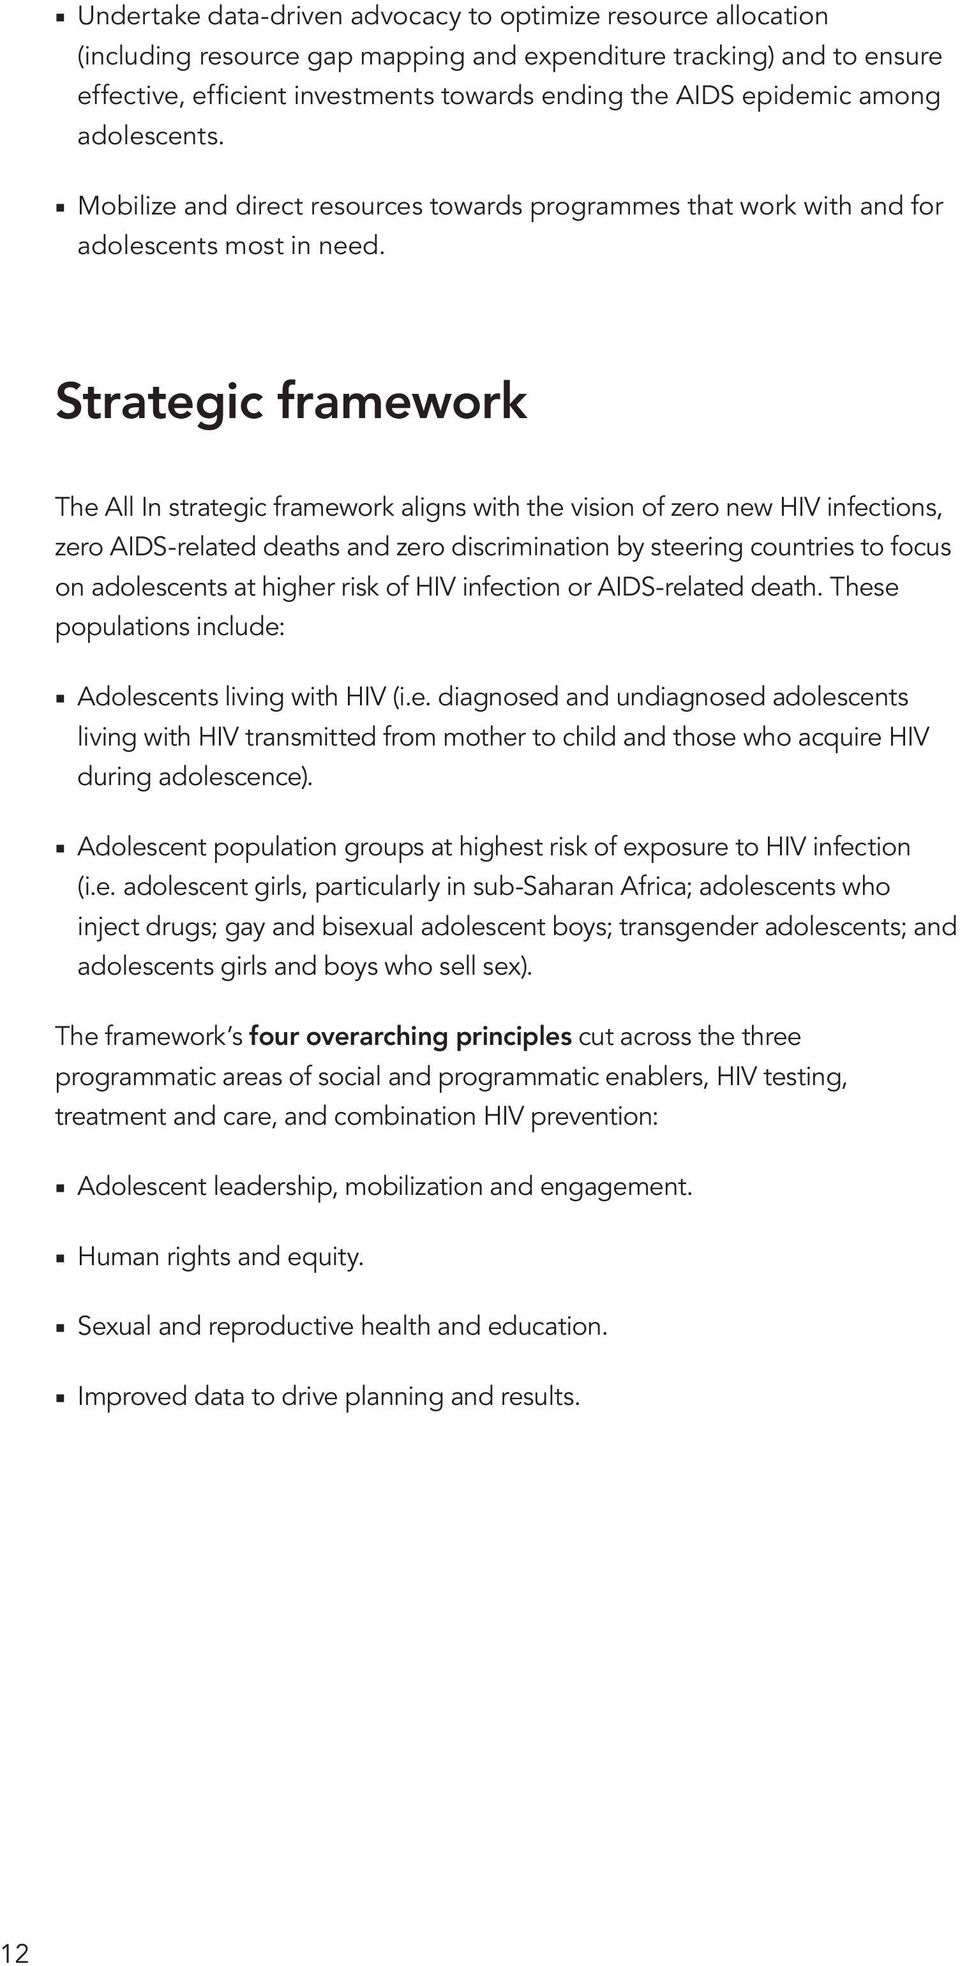 Strategic framework The All In strategic framework aligns with the vision of zero new HIV infections, zero AIDS-related deaths and zero discrimination by steering countries to focus on adolescents at